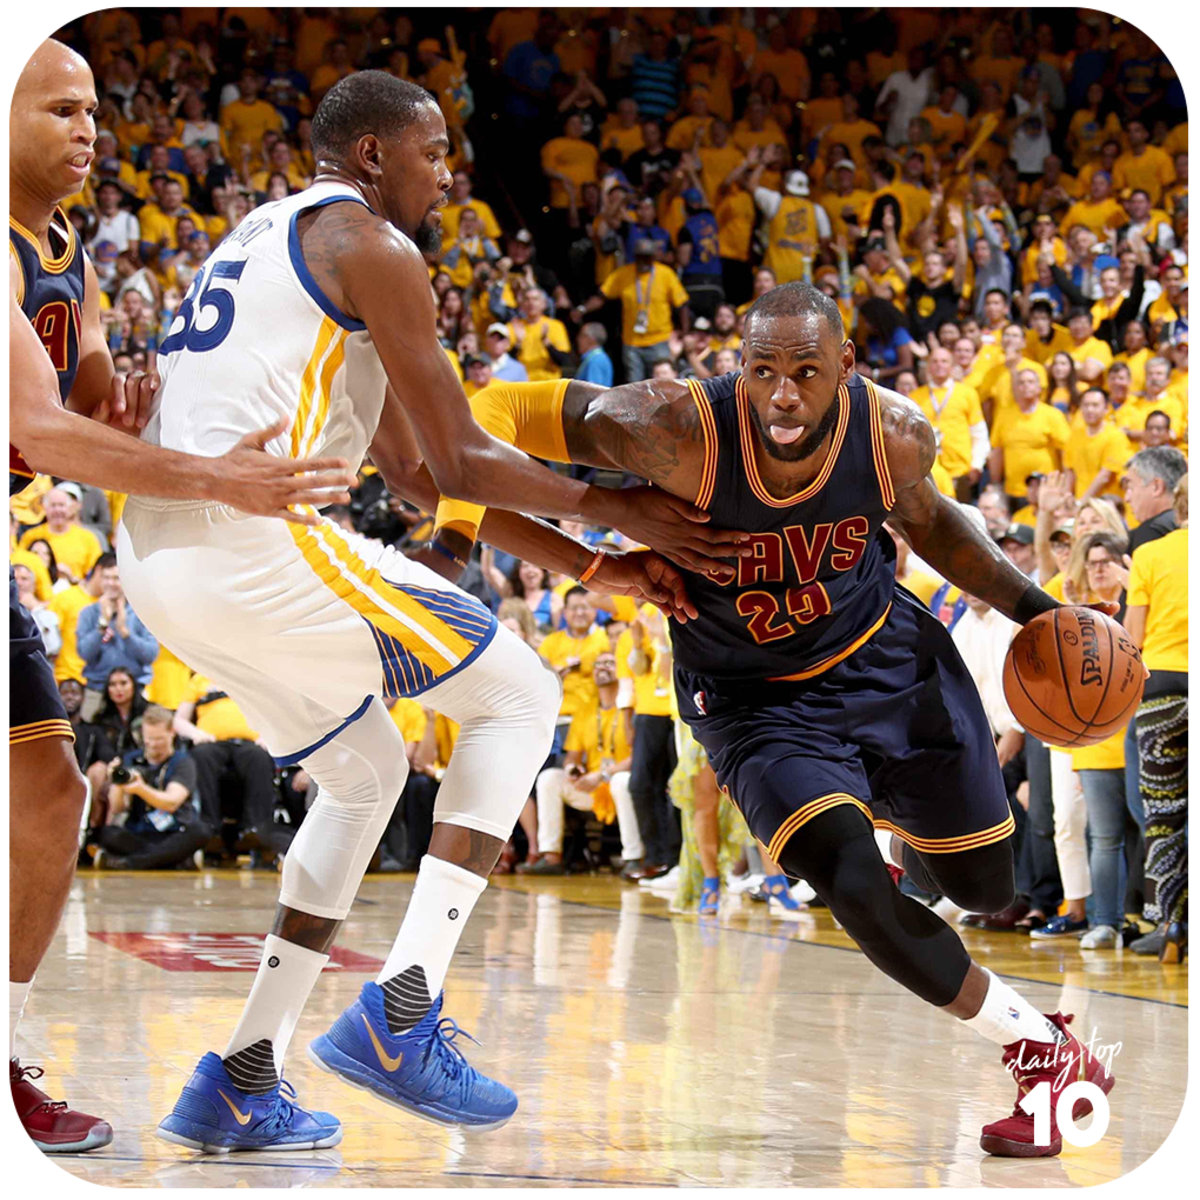 Lebron James drives to the hoop while Kevin Durant defends.